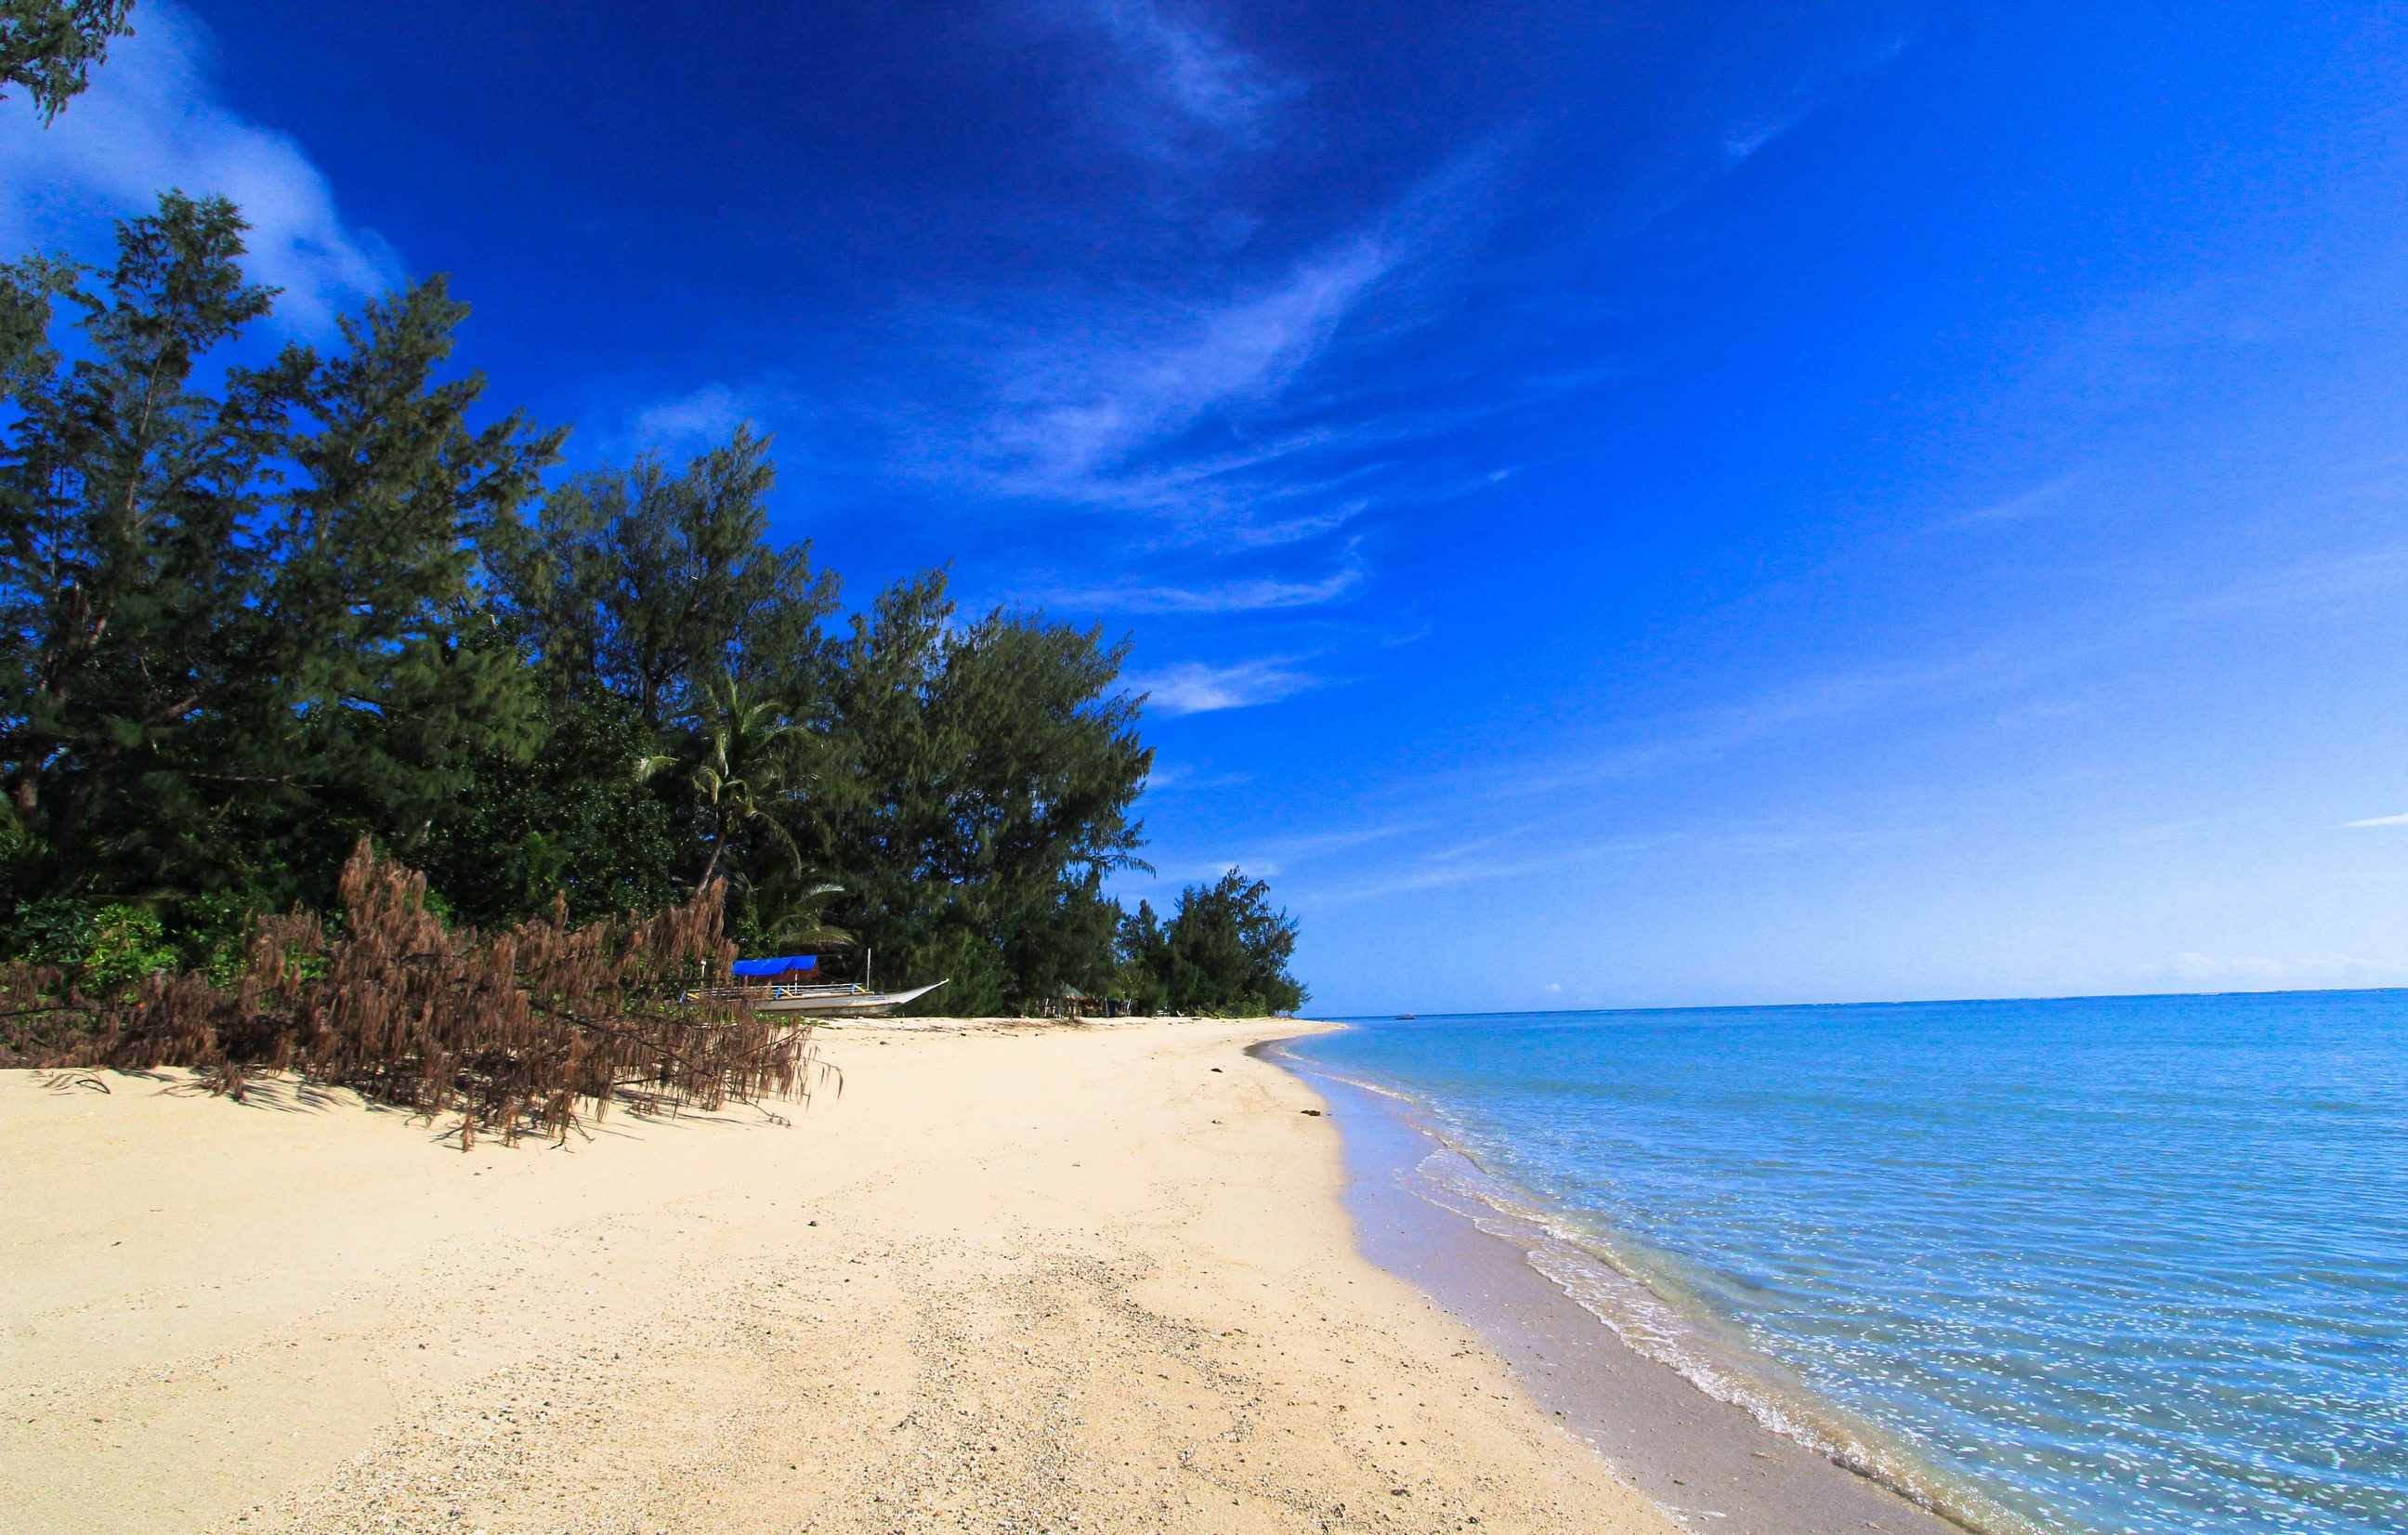 Mauban Philippines  city photos gallery : 10 of the Best White Sand Beaches in the Philippines Pinoy Top Tens